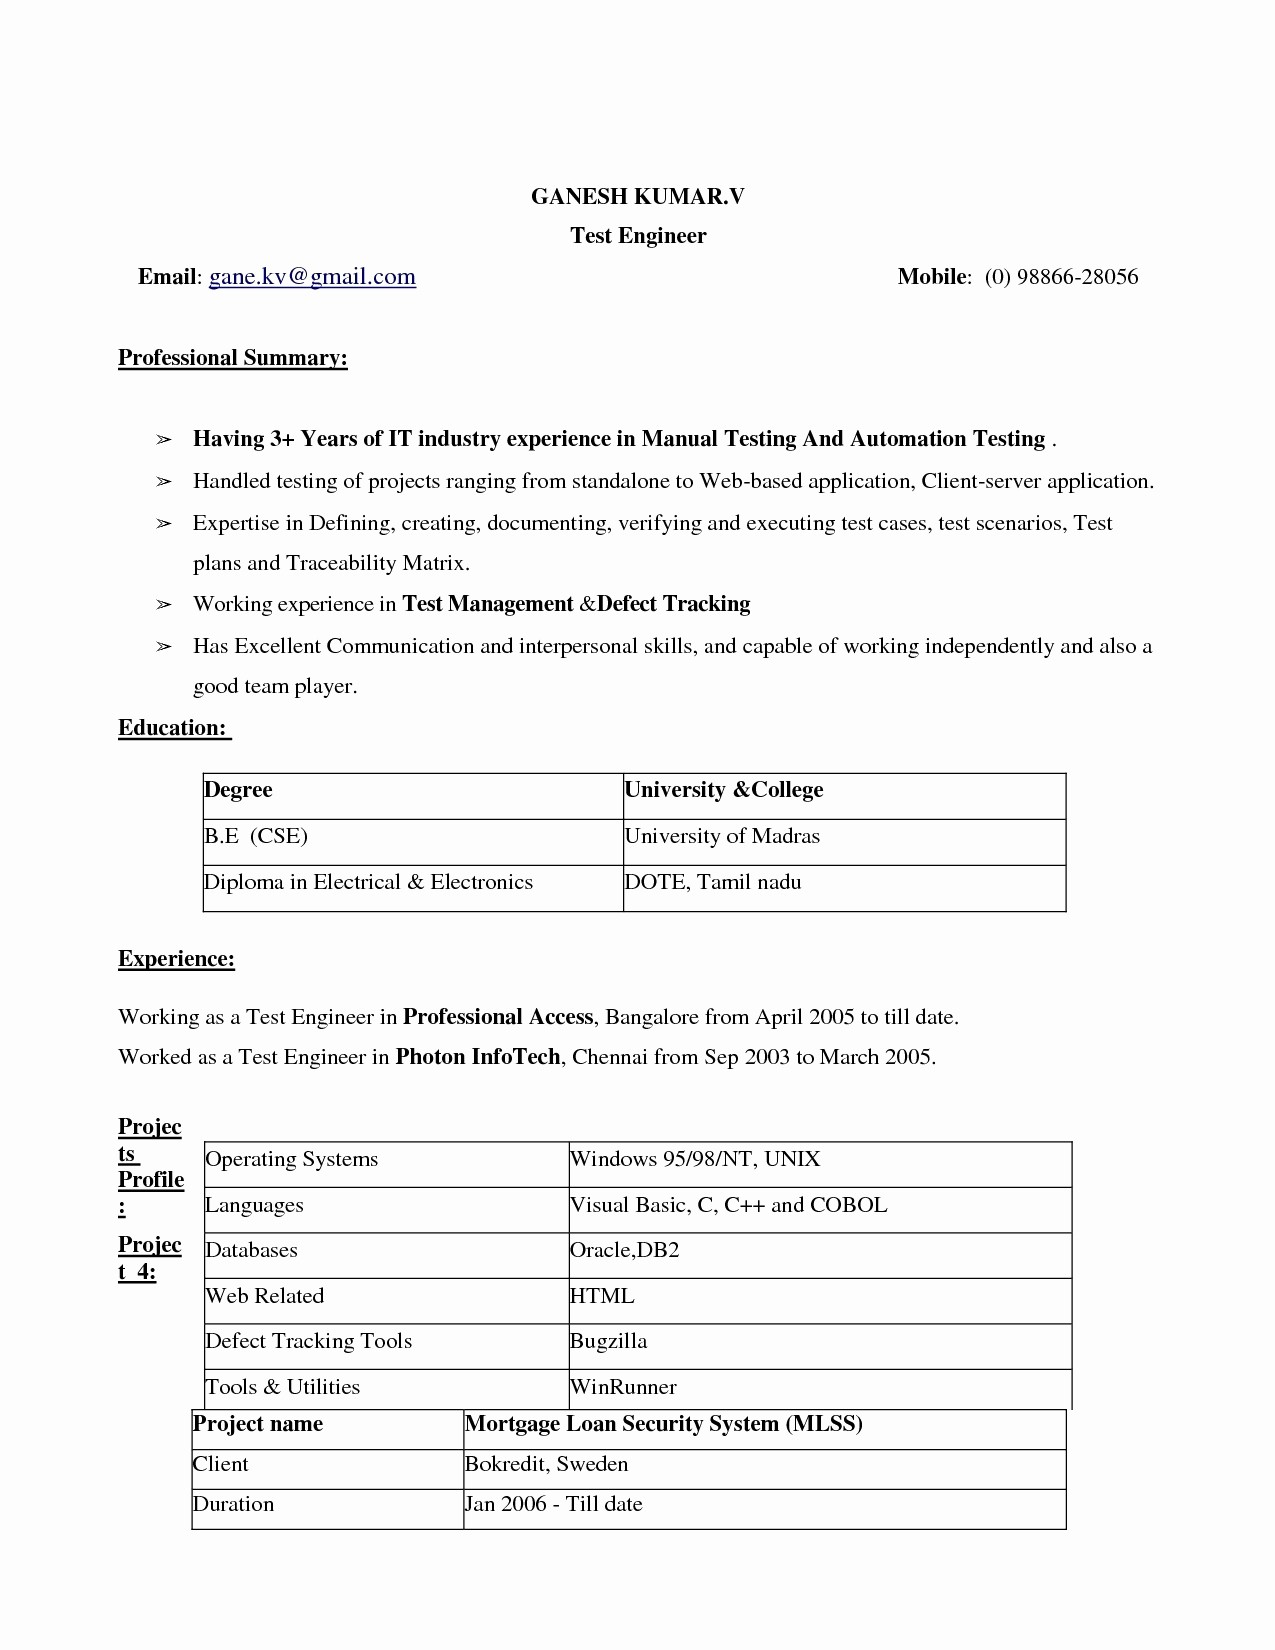 Ms Office Word Resume Templates New Resume Template Microsoft Word 2017